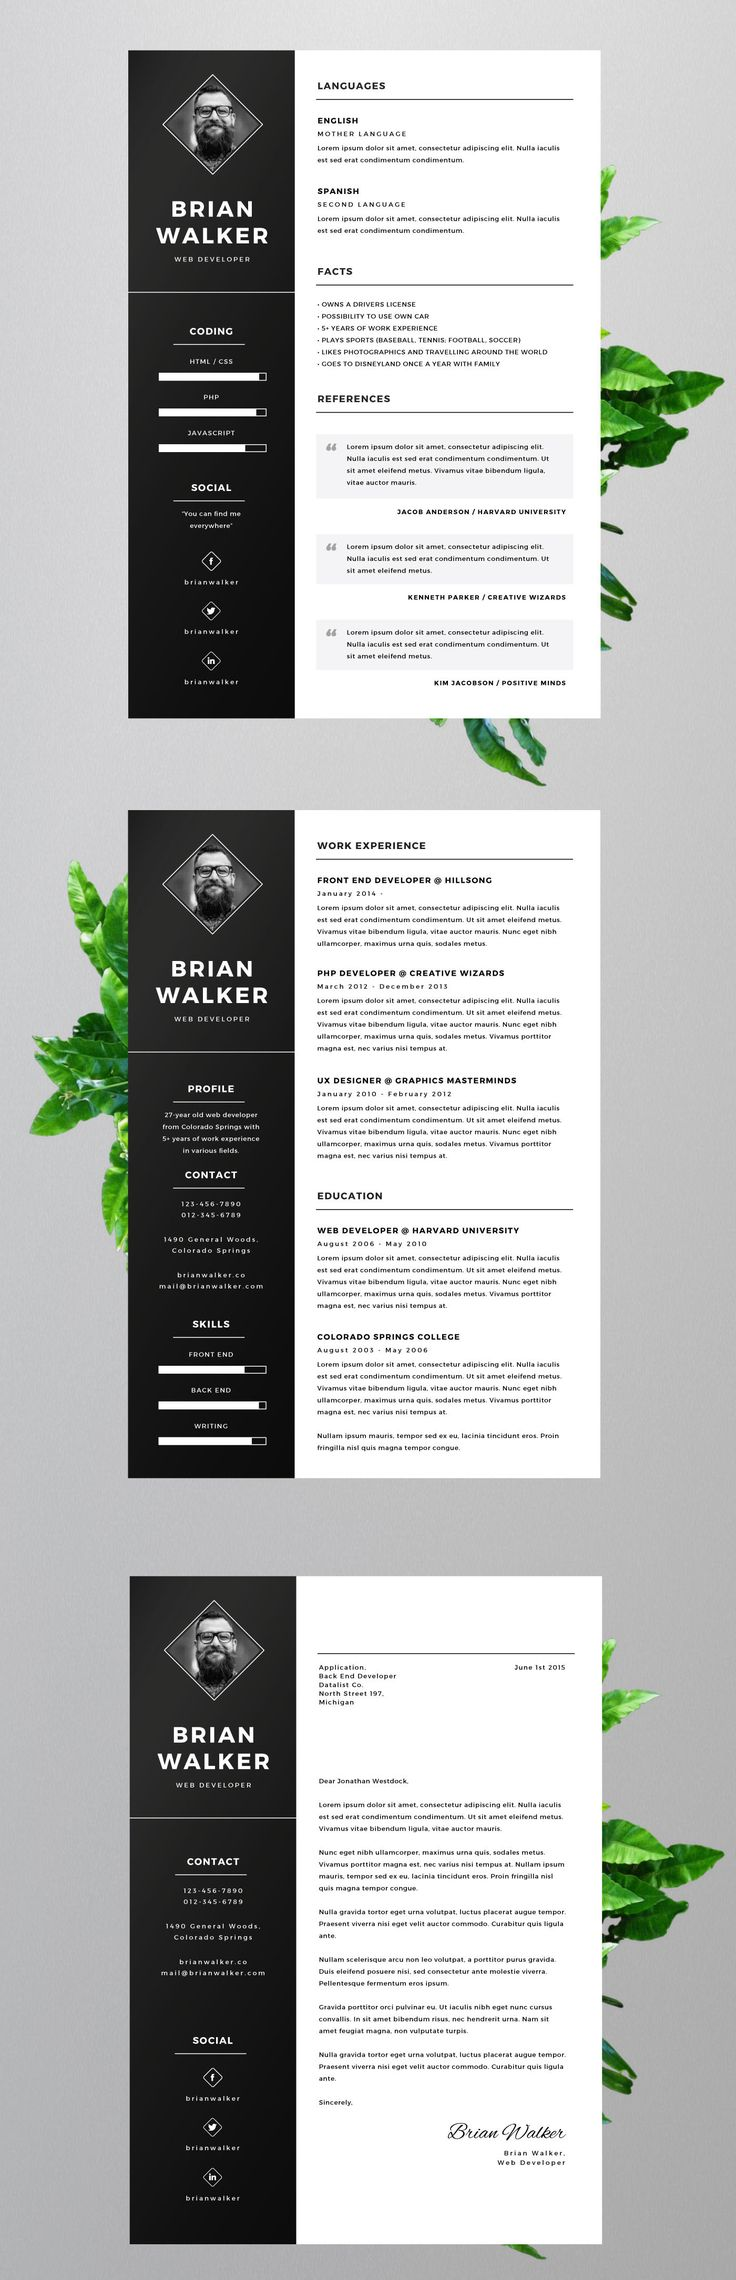 Free resume template for Microsoft Word Adobe